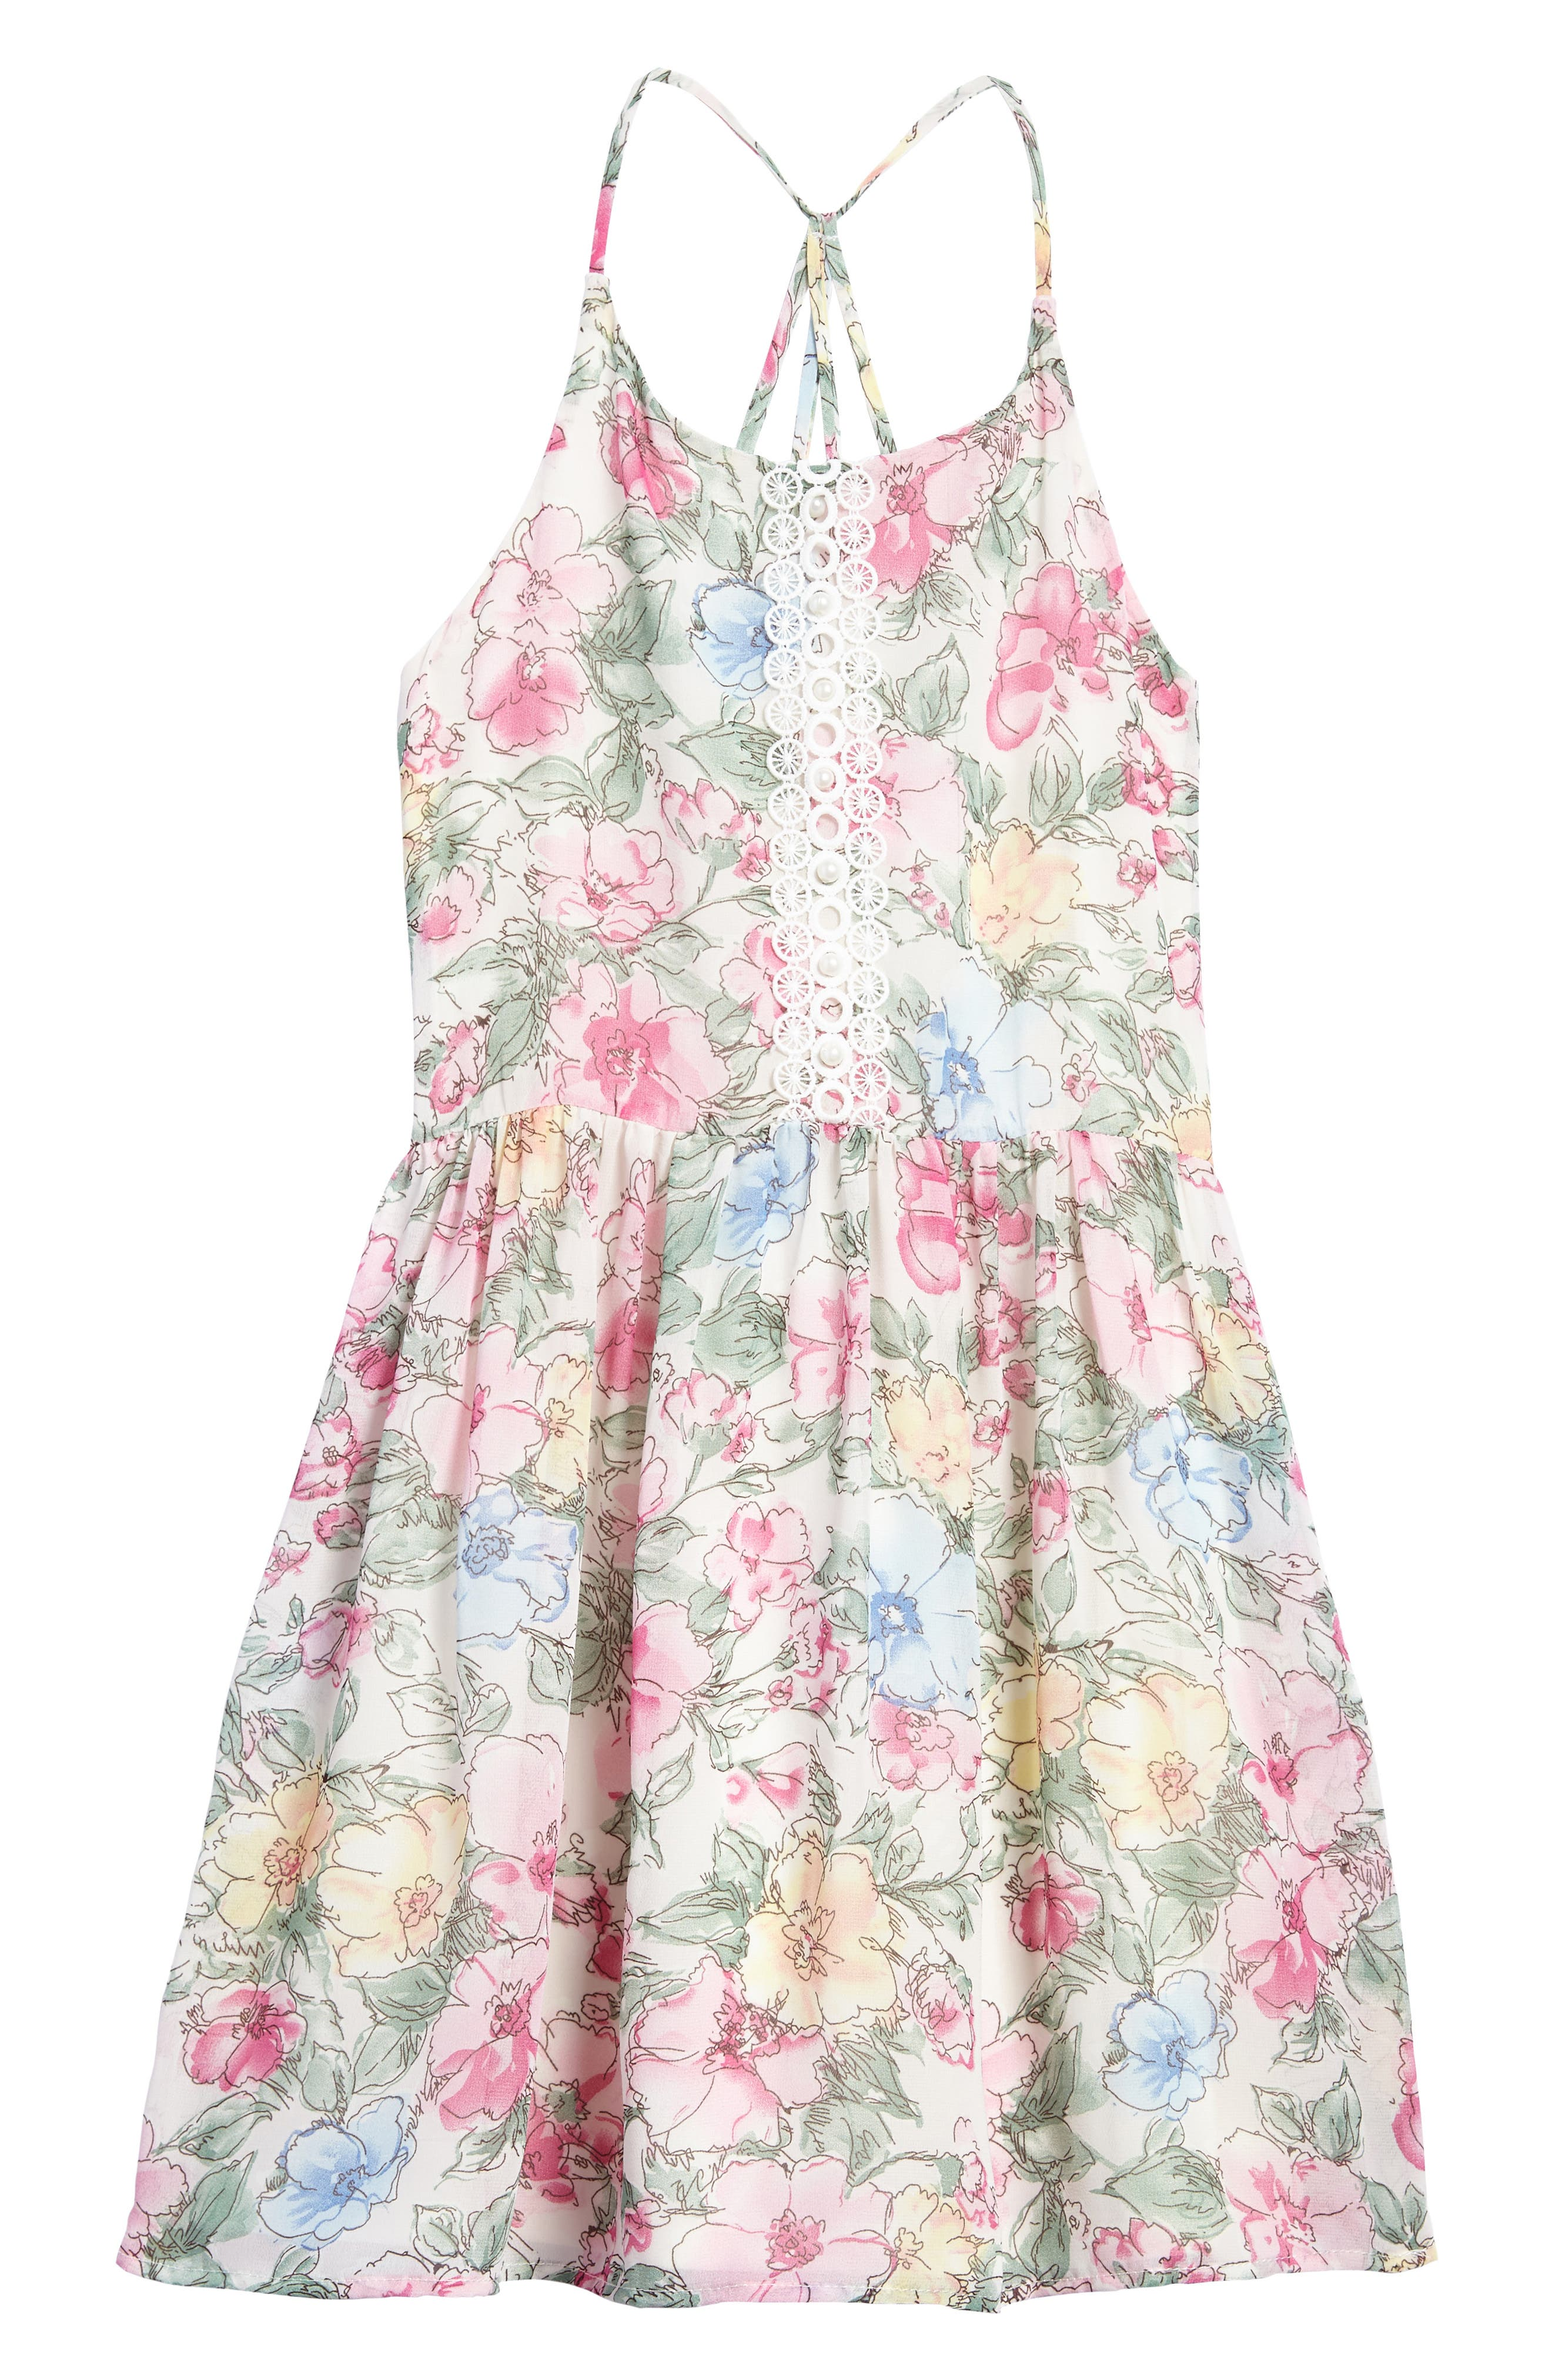 Painted Floral Dress,                             Main thumbnail 1, color,                             690